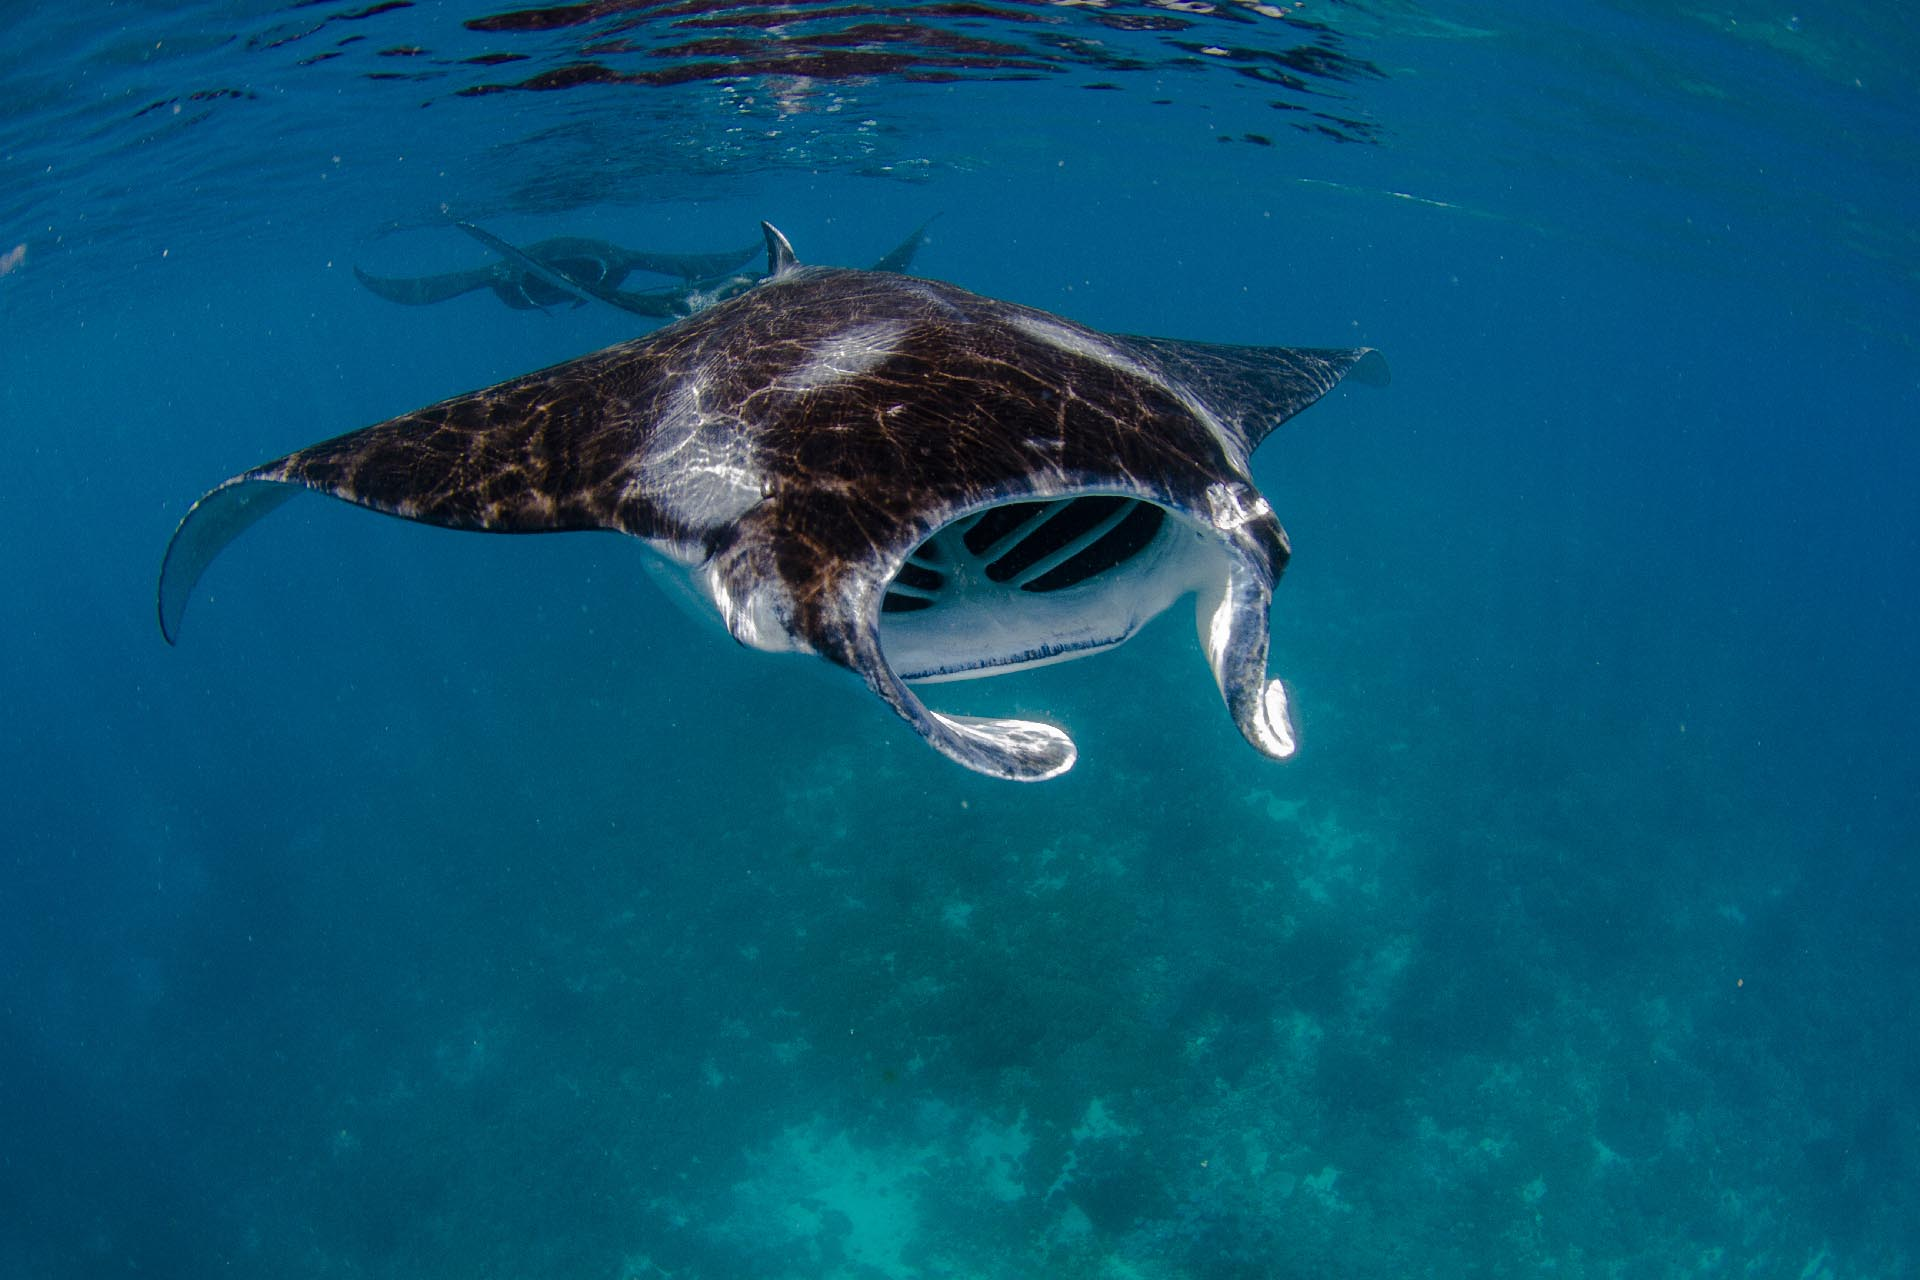 manta ray feeding on the surface